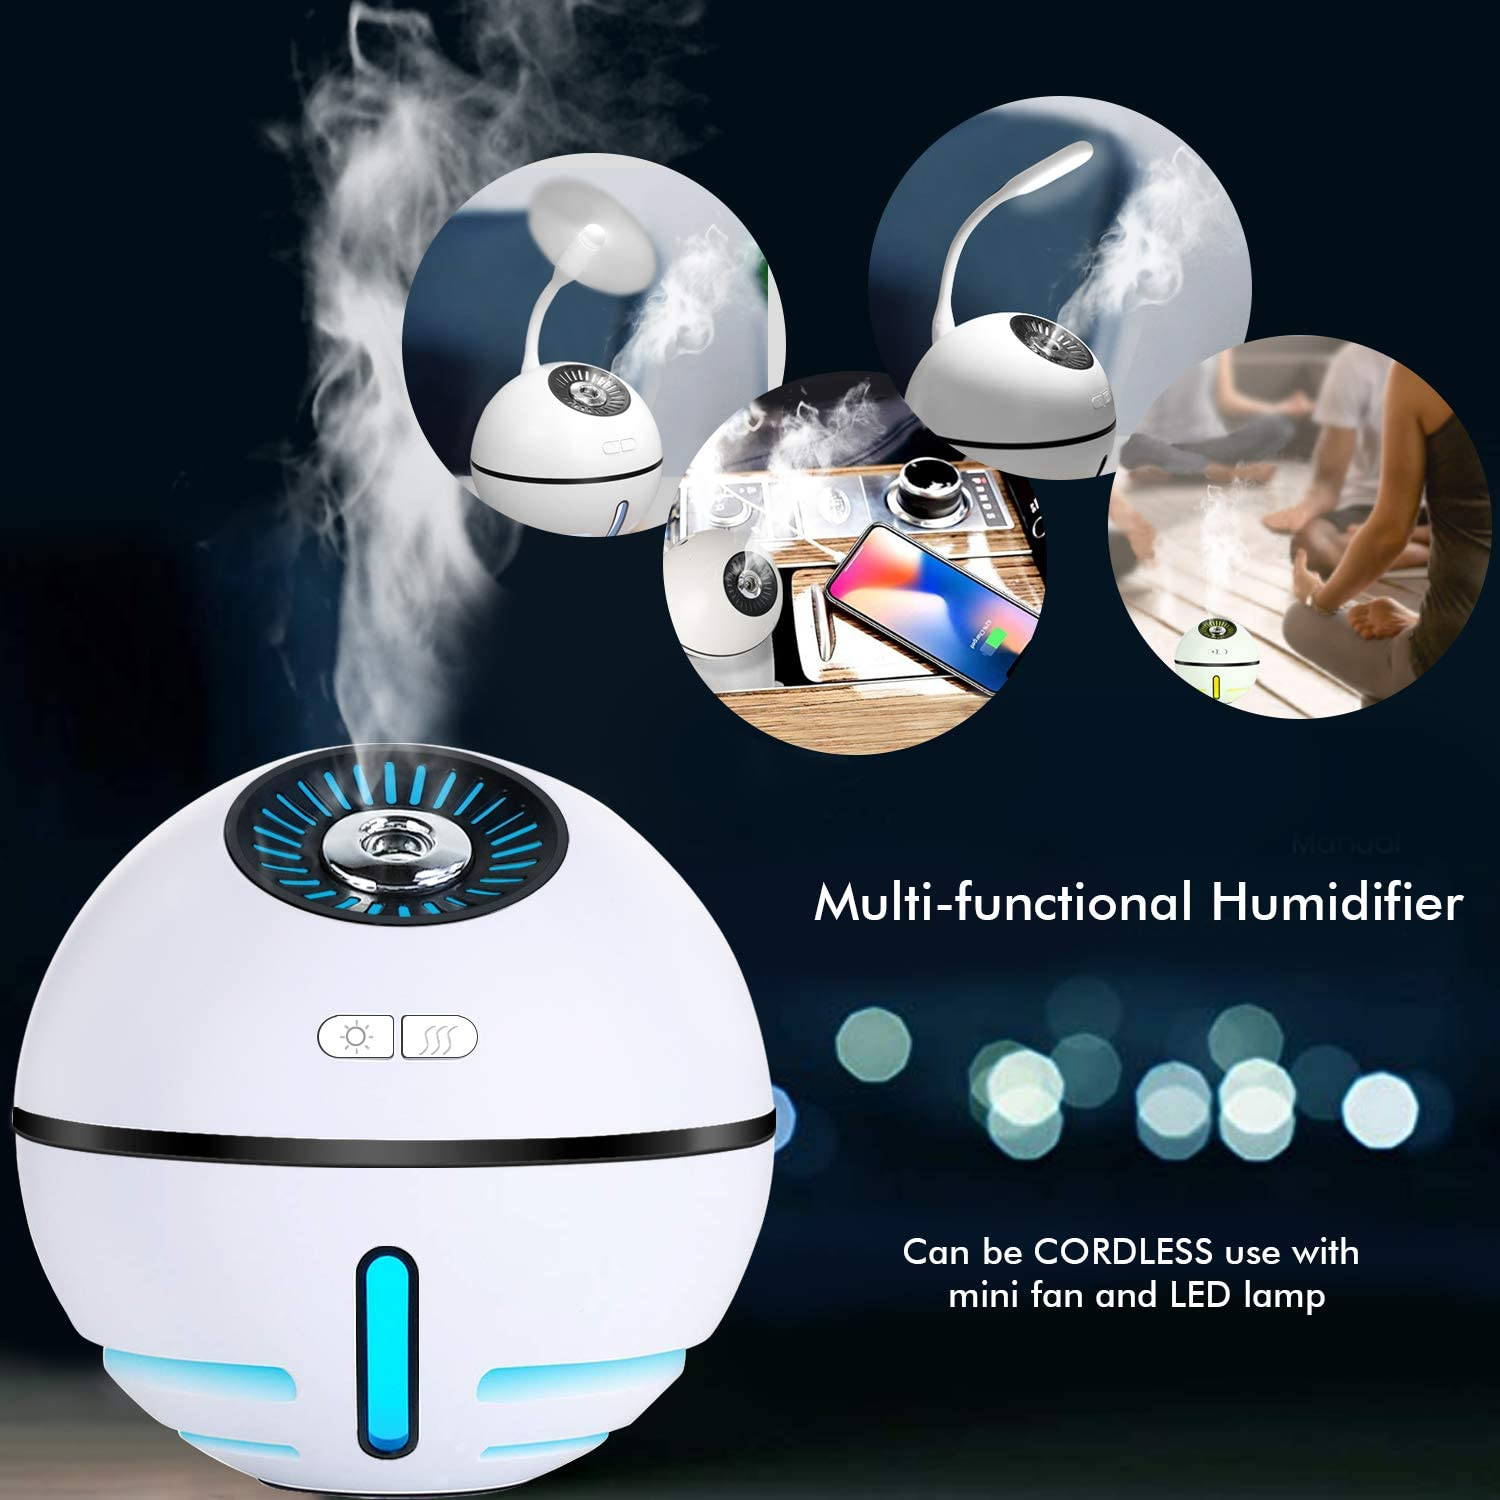 Car Personal Humidifier for Home Runs up to 12 Hours White Wireless Humidifier Diffuser for Yoga Office SPA FAMEDY Cordless Humidifier Mini Travel Portable Cool Mist Humidifier Auto Shut-Off